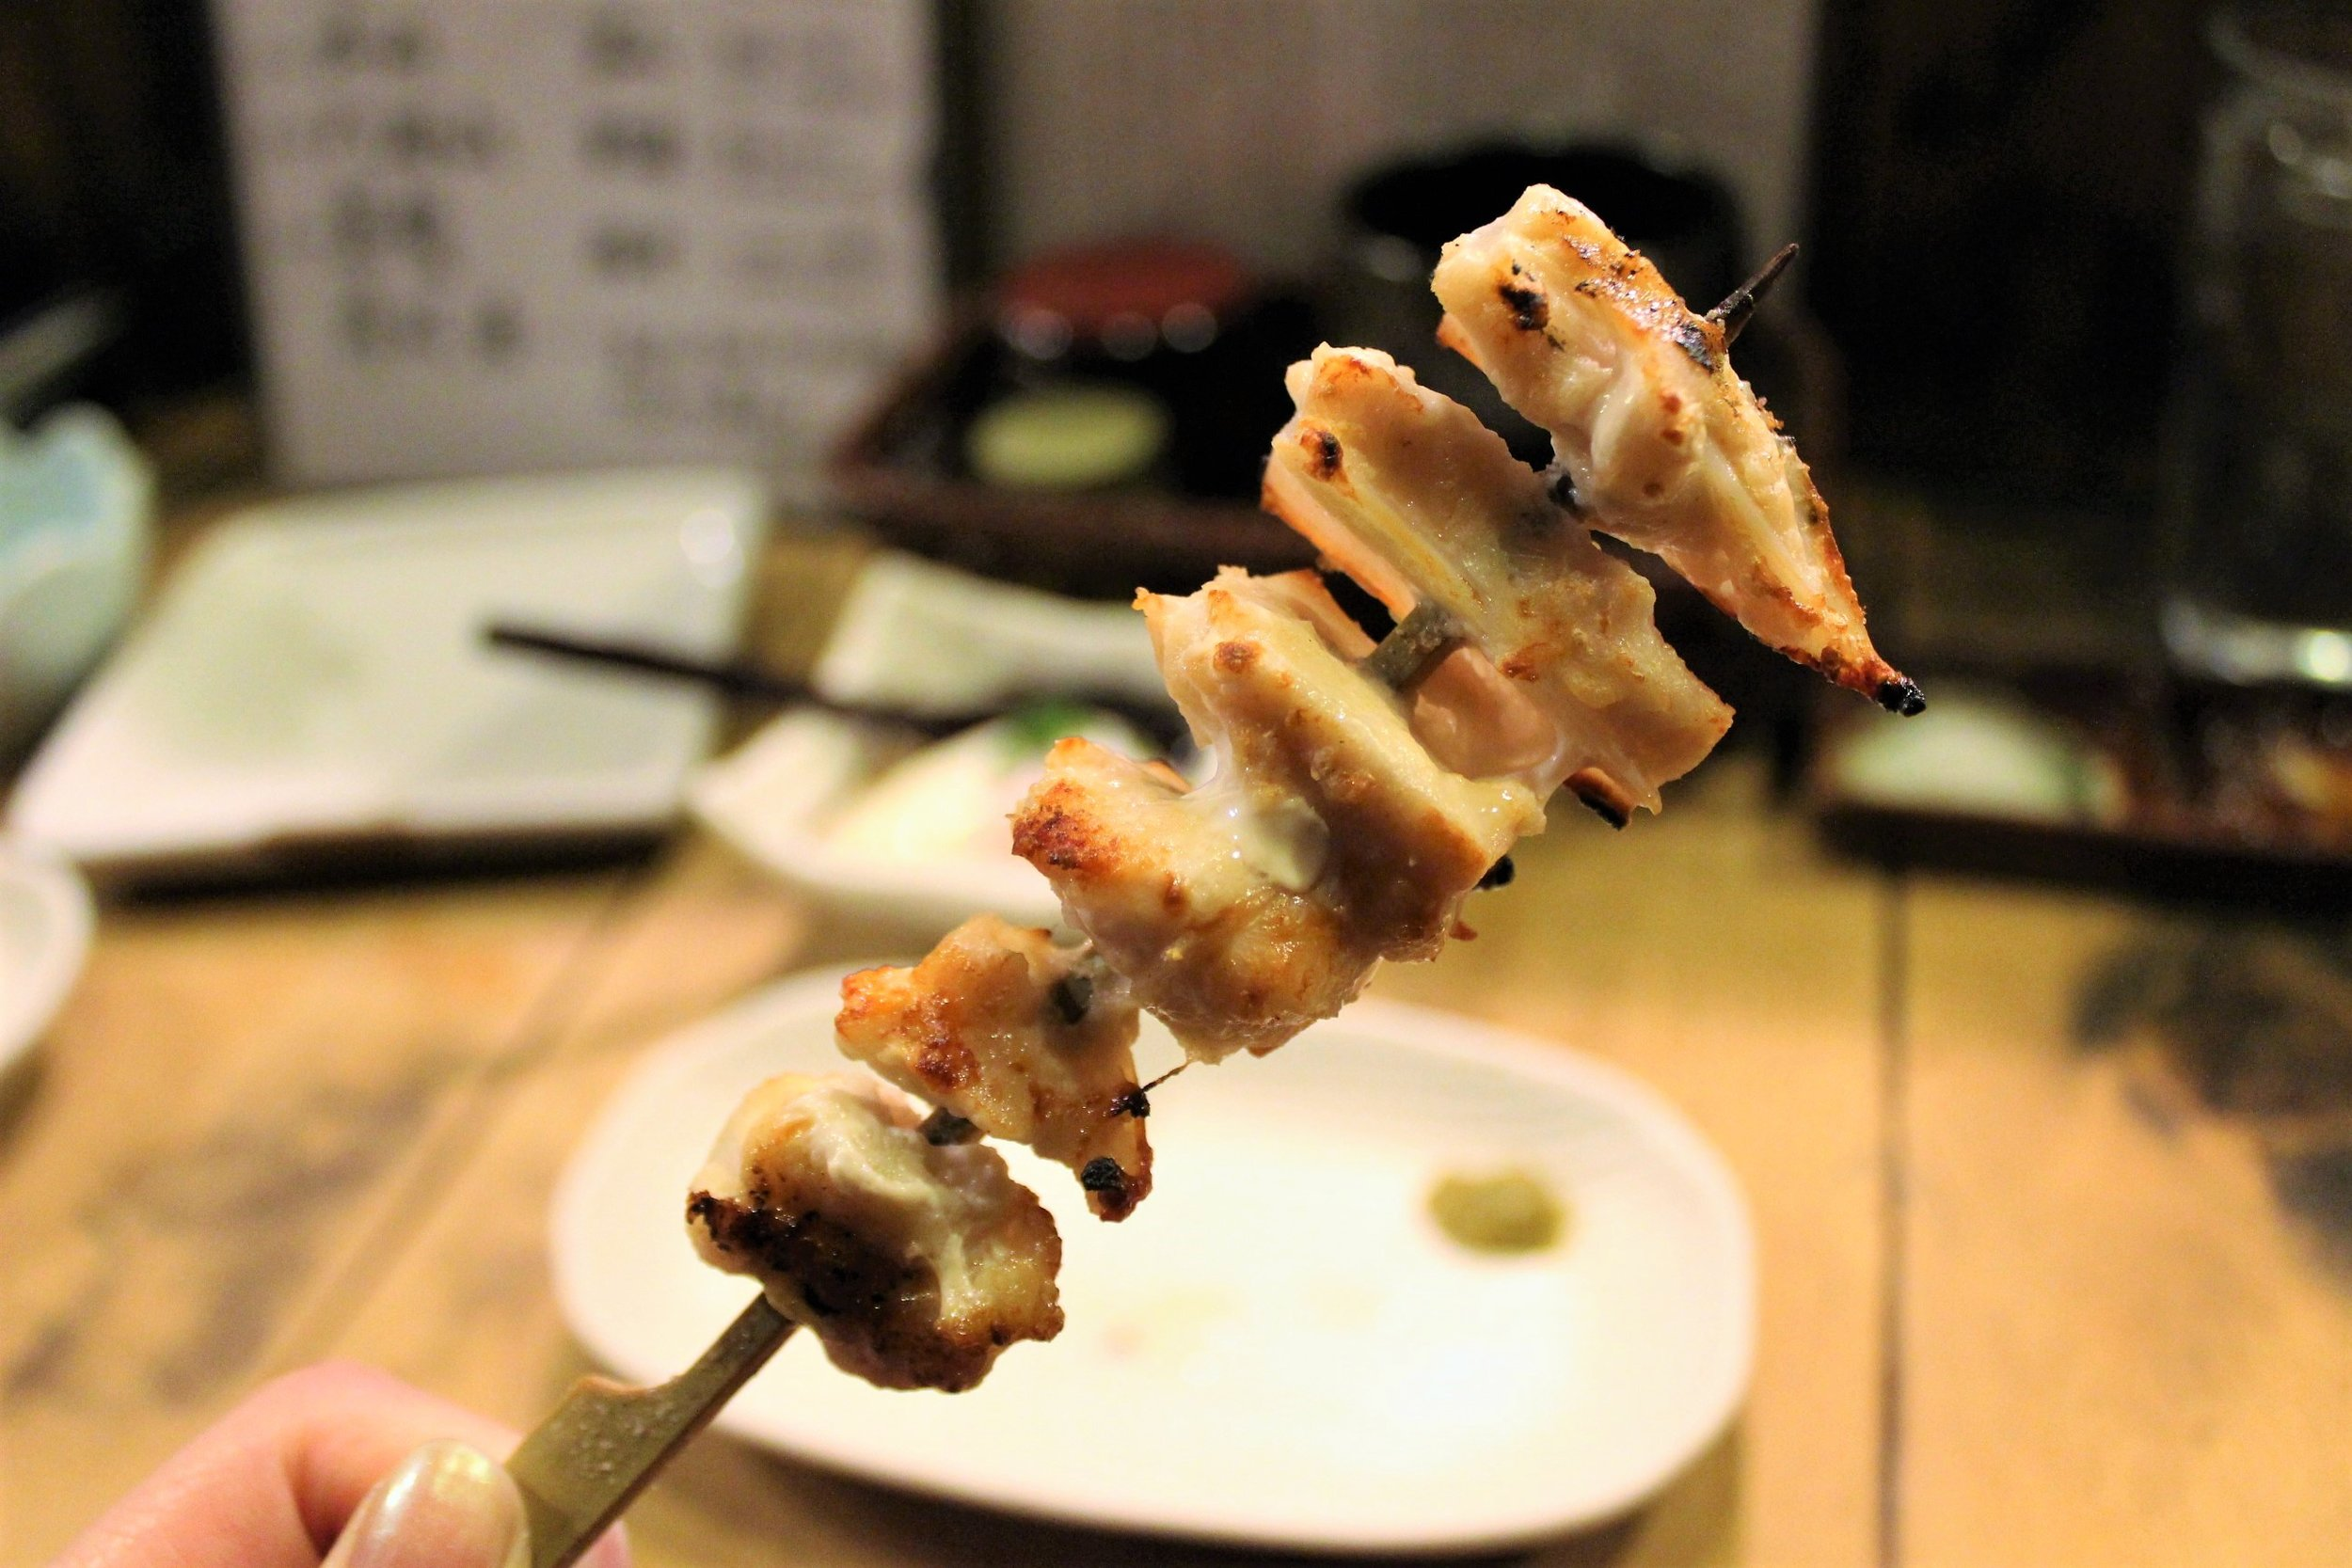 Nankotsu Chicken Pieces with Soft Bone at Ganchan in Tokyo